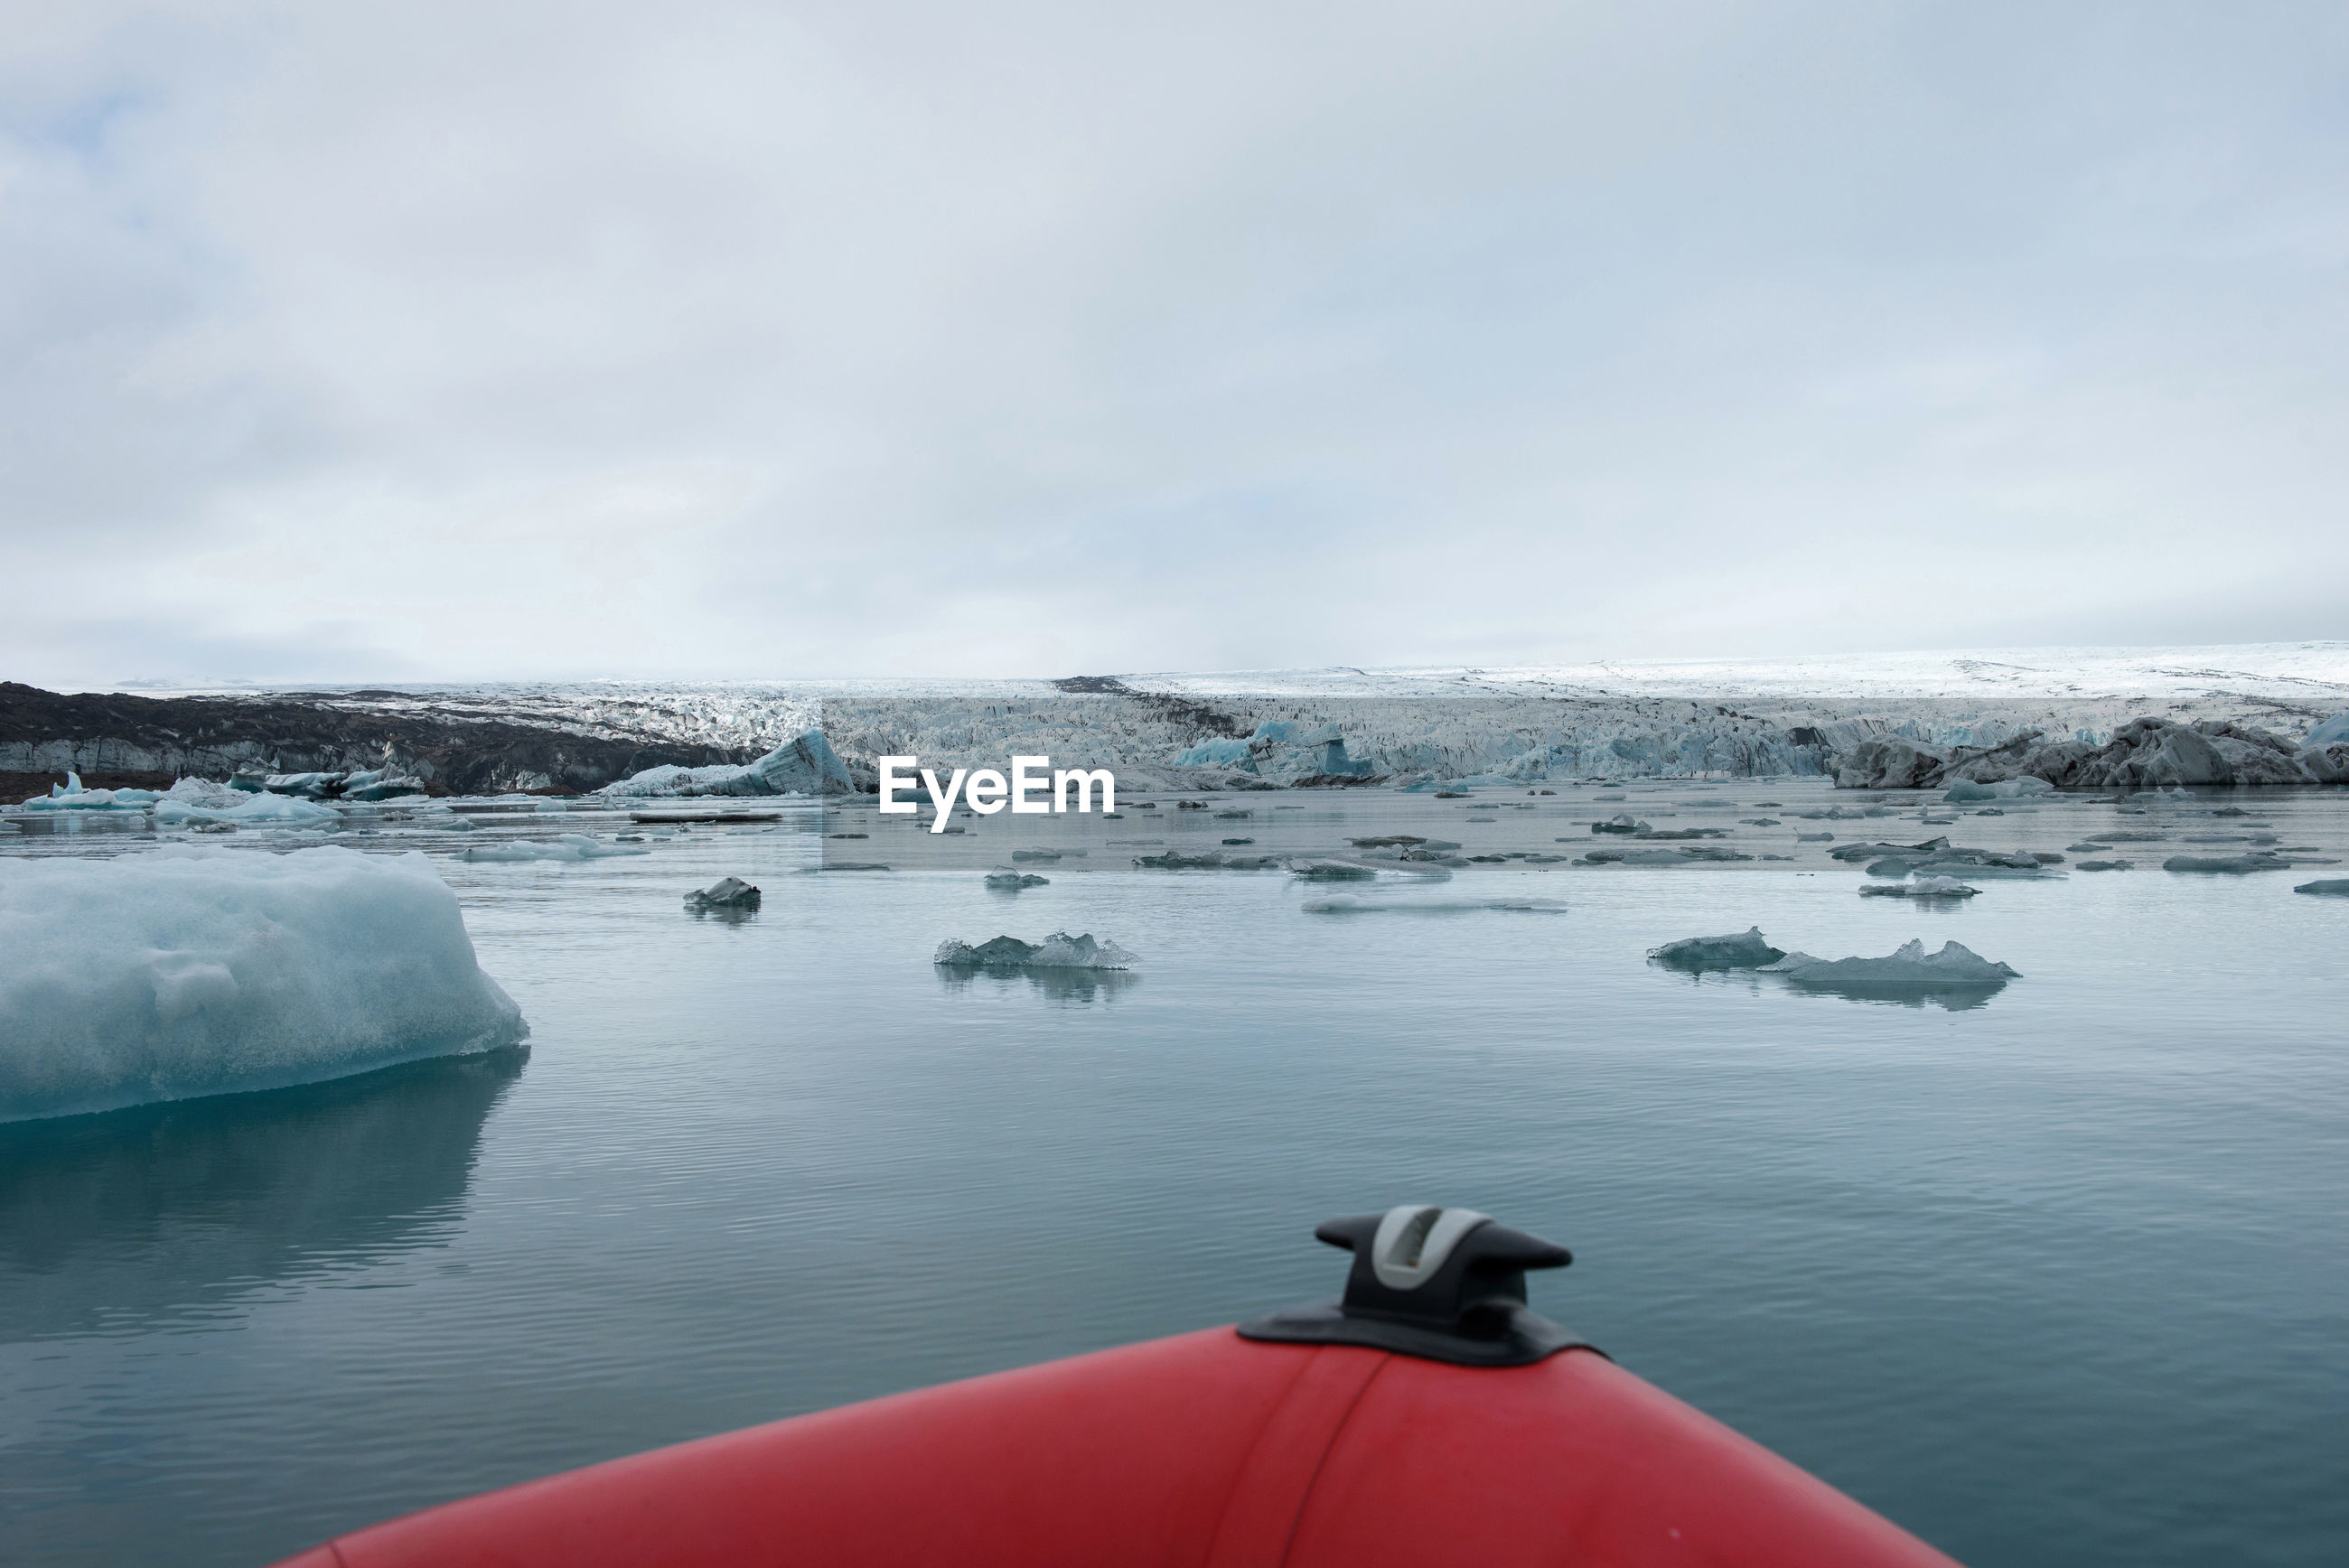 Scenic view of frozen sea seen from boat against sky